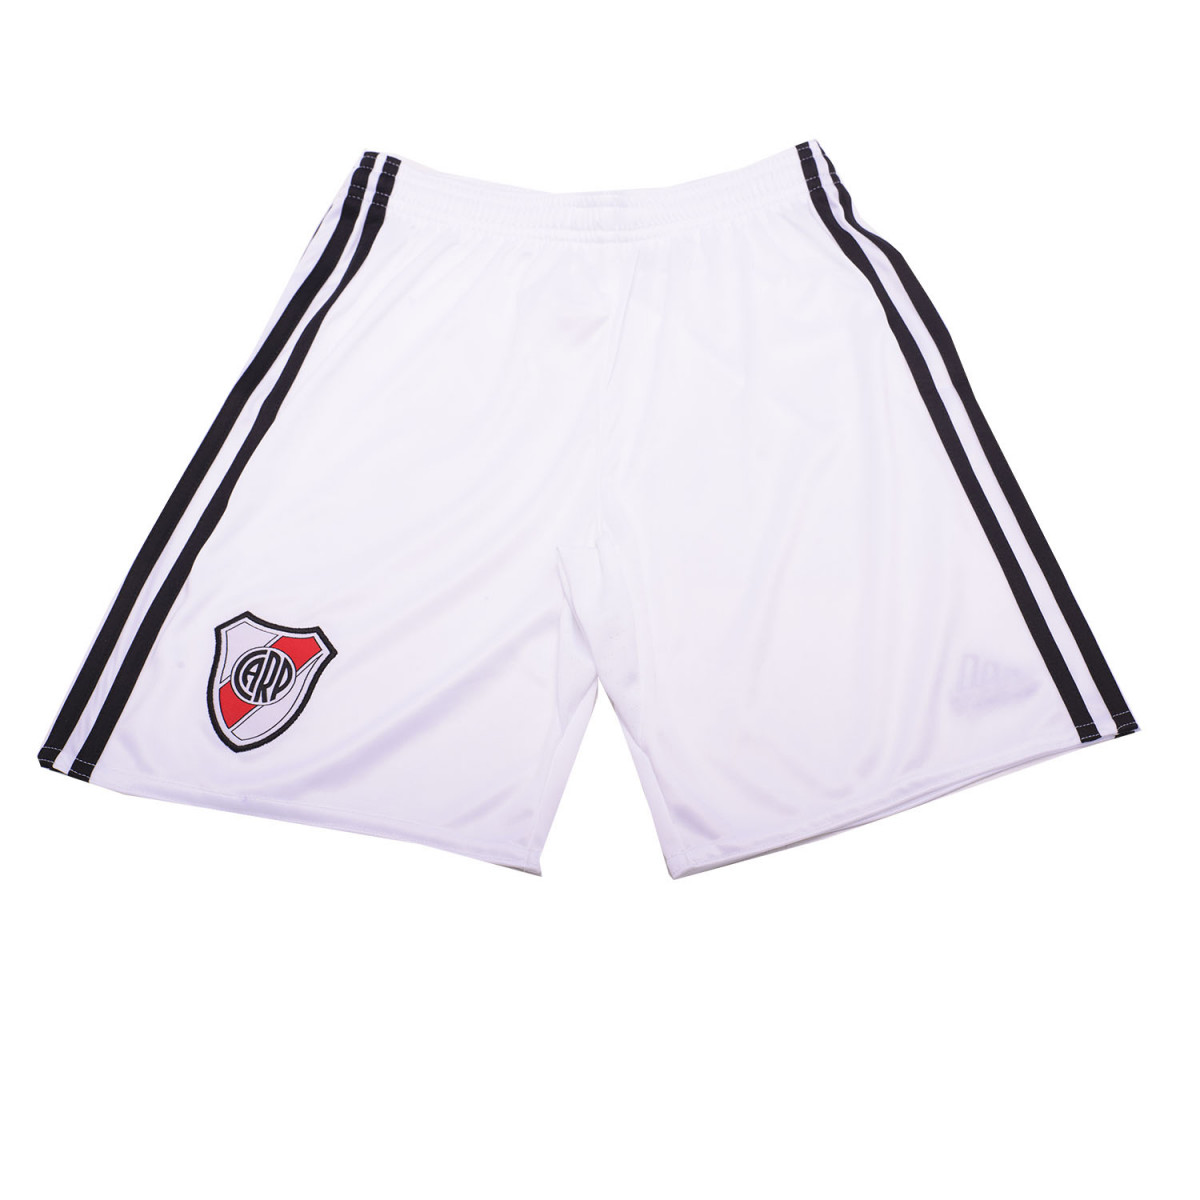 Short Adidas River Plate Kids 2018